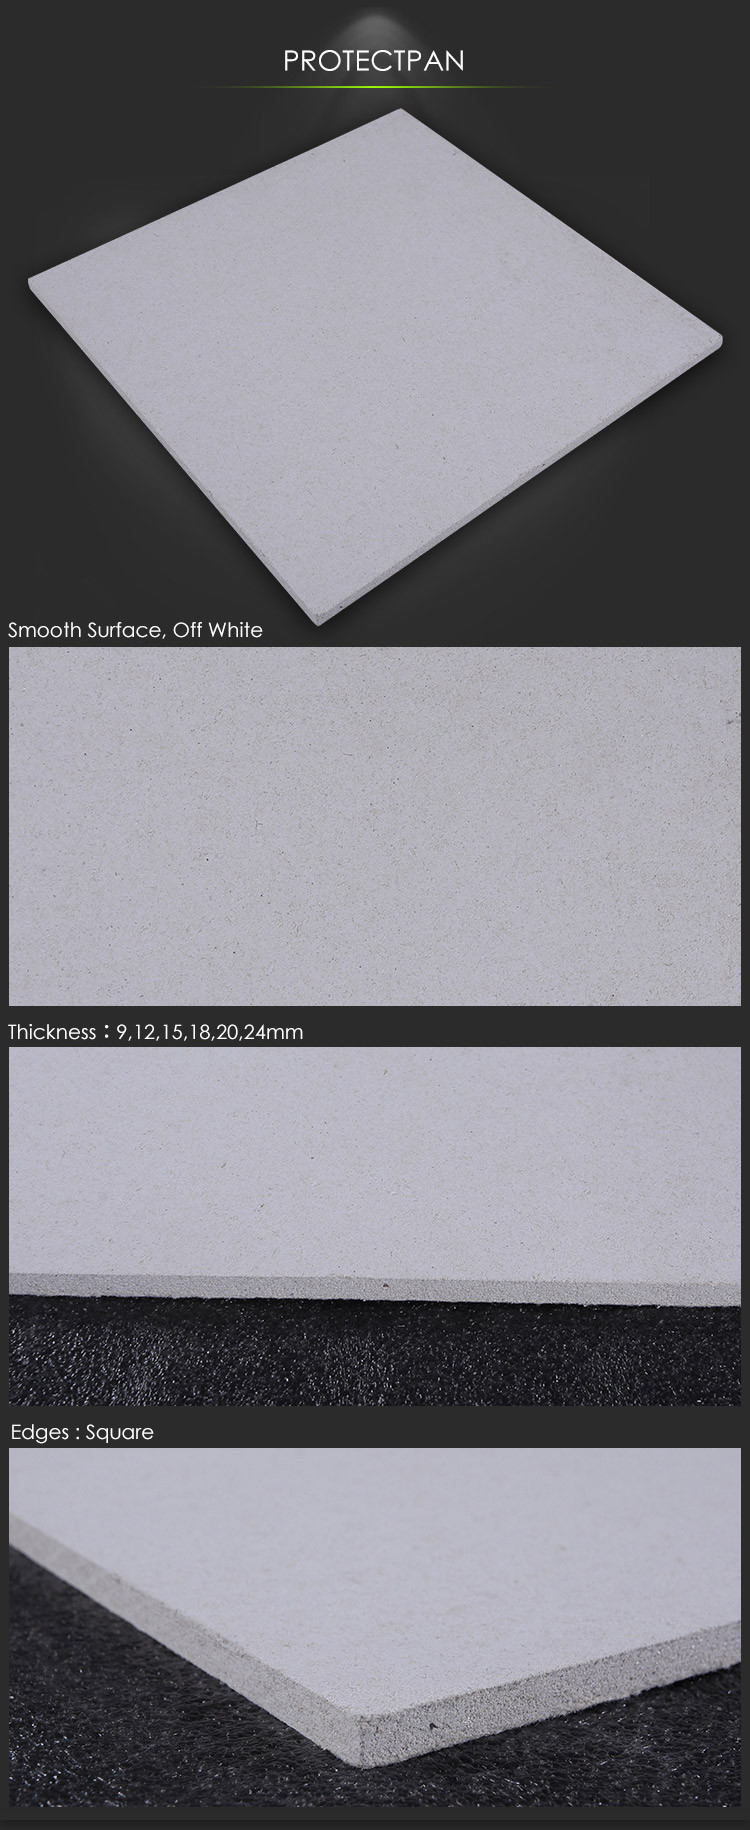 Steel beam fire protection wrapping non asbestos calcium silicate steel beam fire protection wrapping non asbestos calcium silicate board fiber cement board dailygadgetfo Gallery